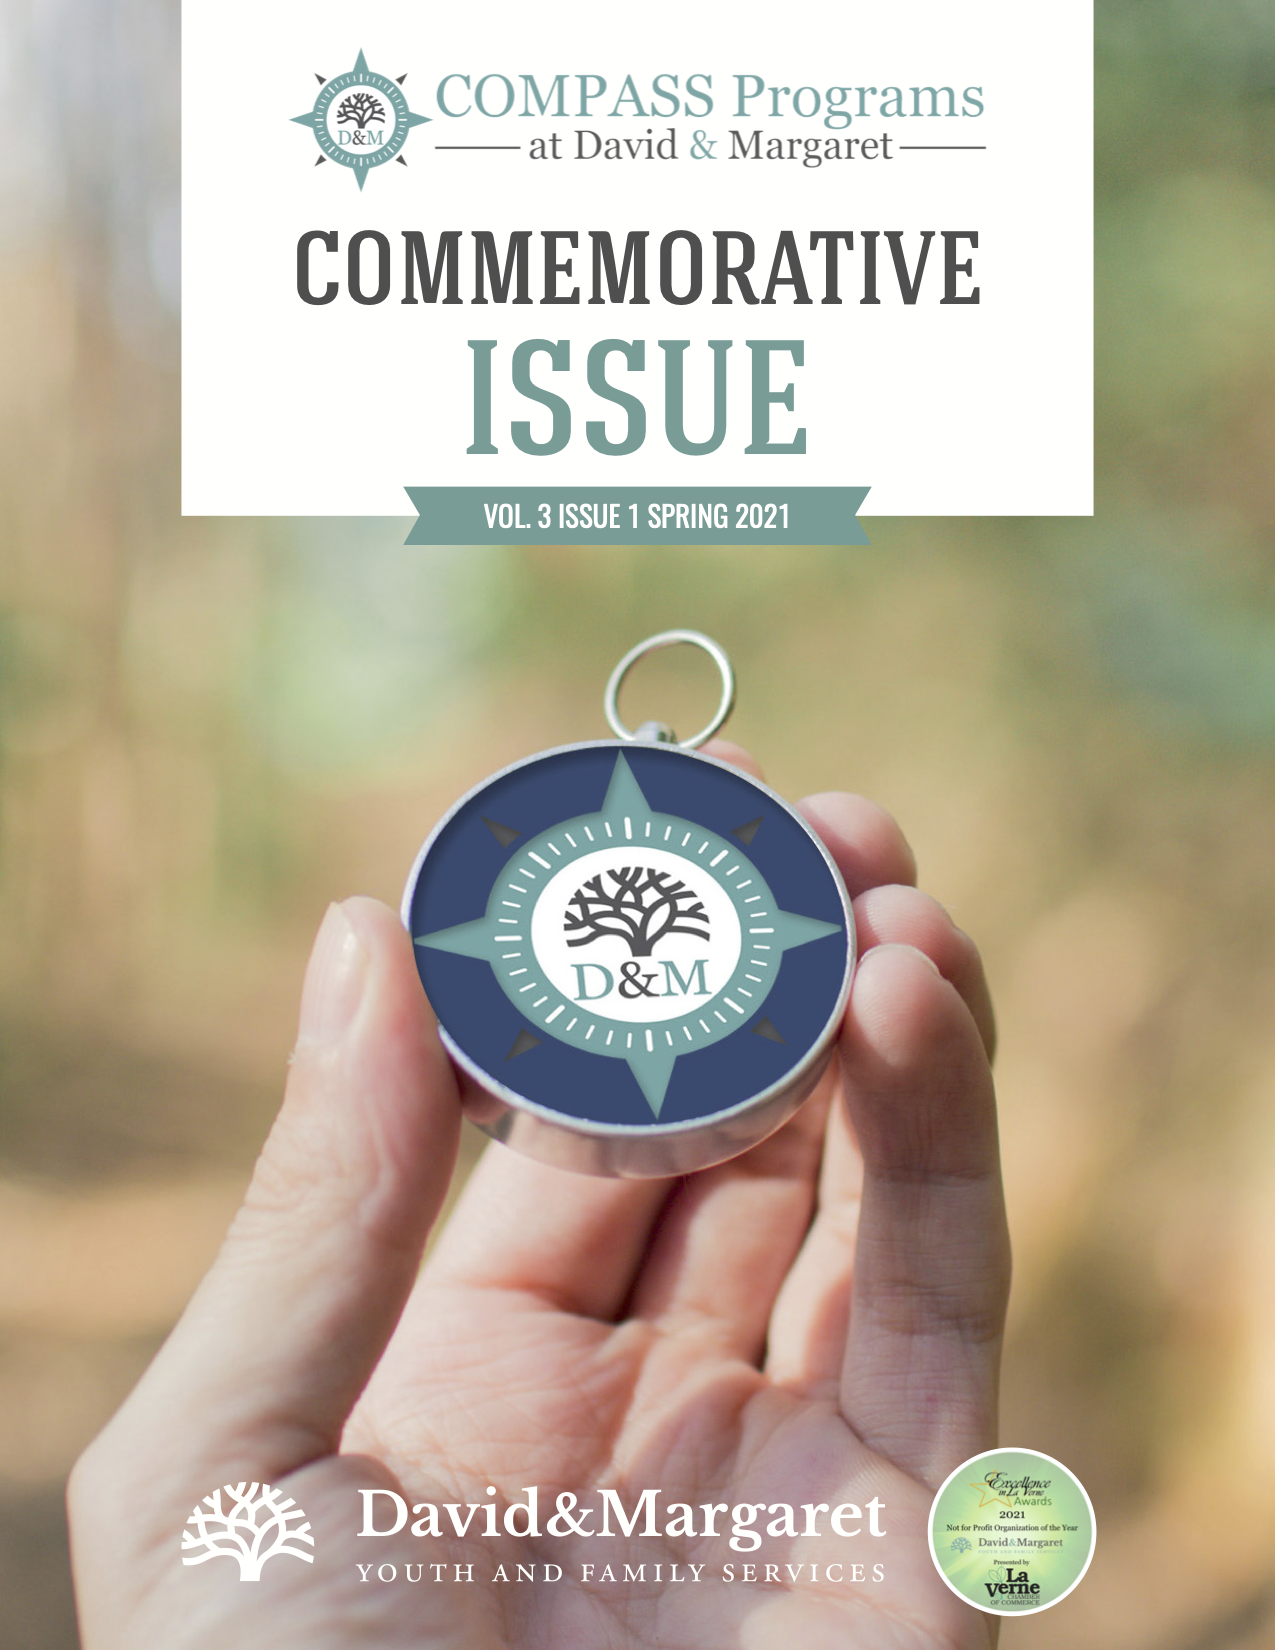 David & Margaret Quarterly Newsletter Vol. 3 Issue 1; COMPASS Programs Commemorative Issue